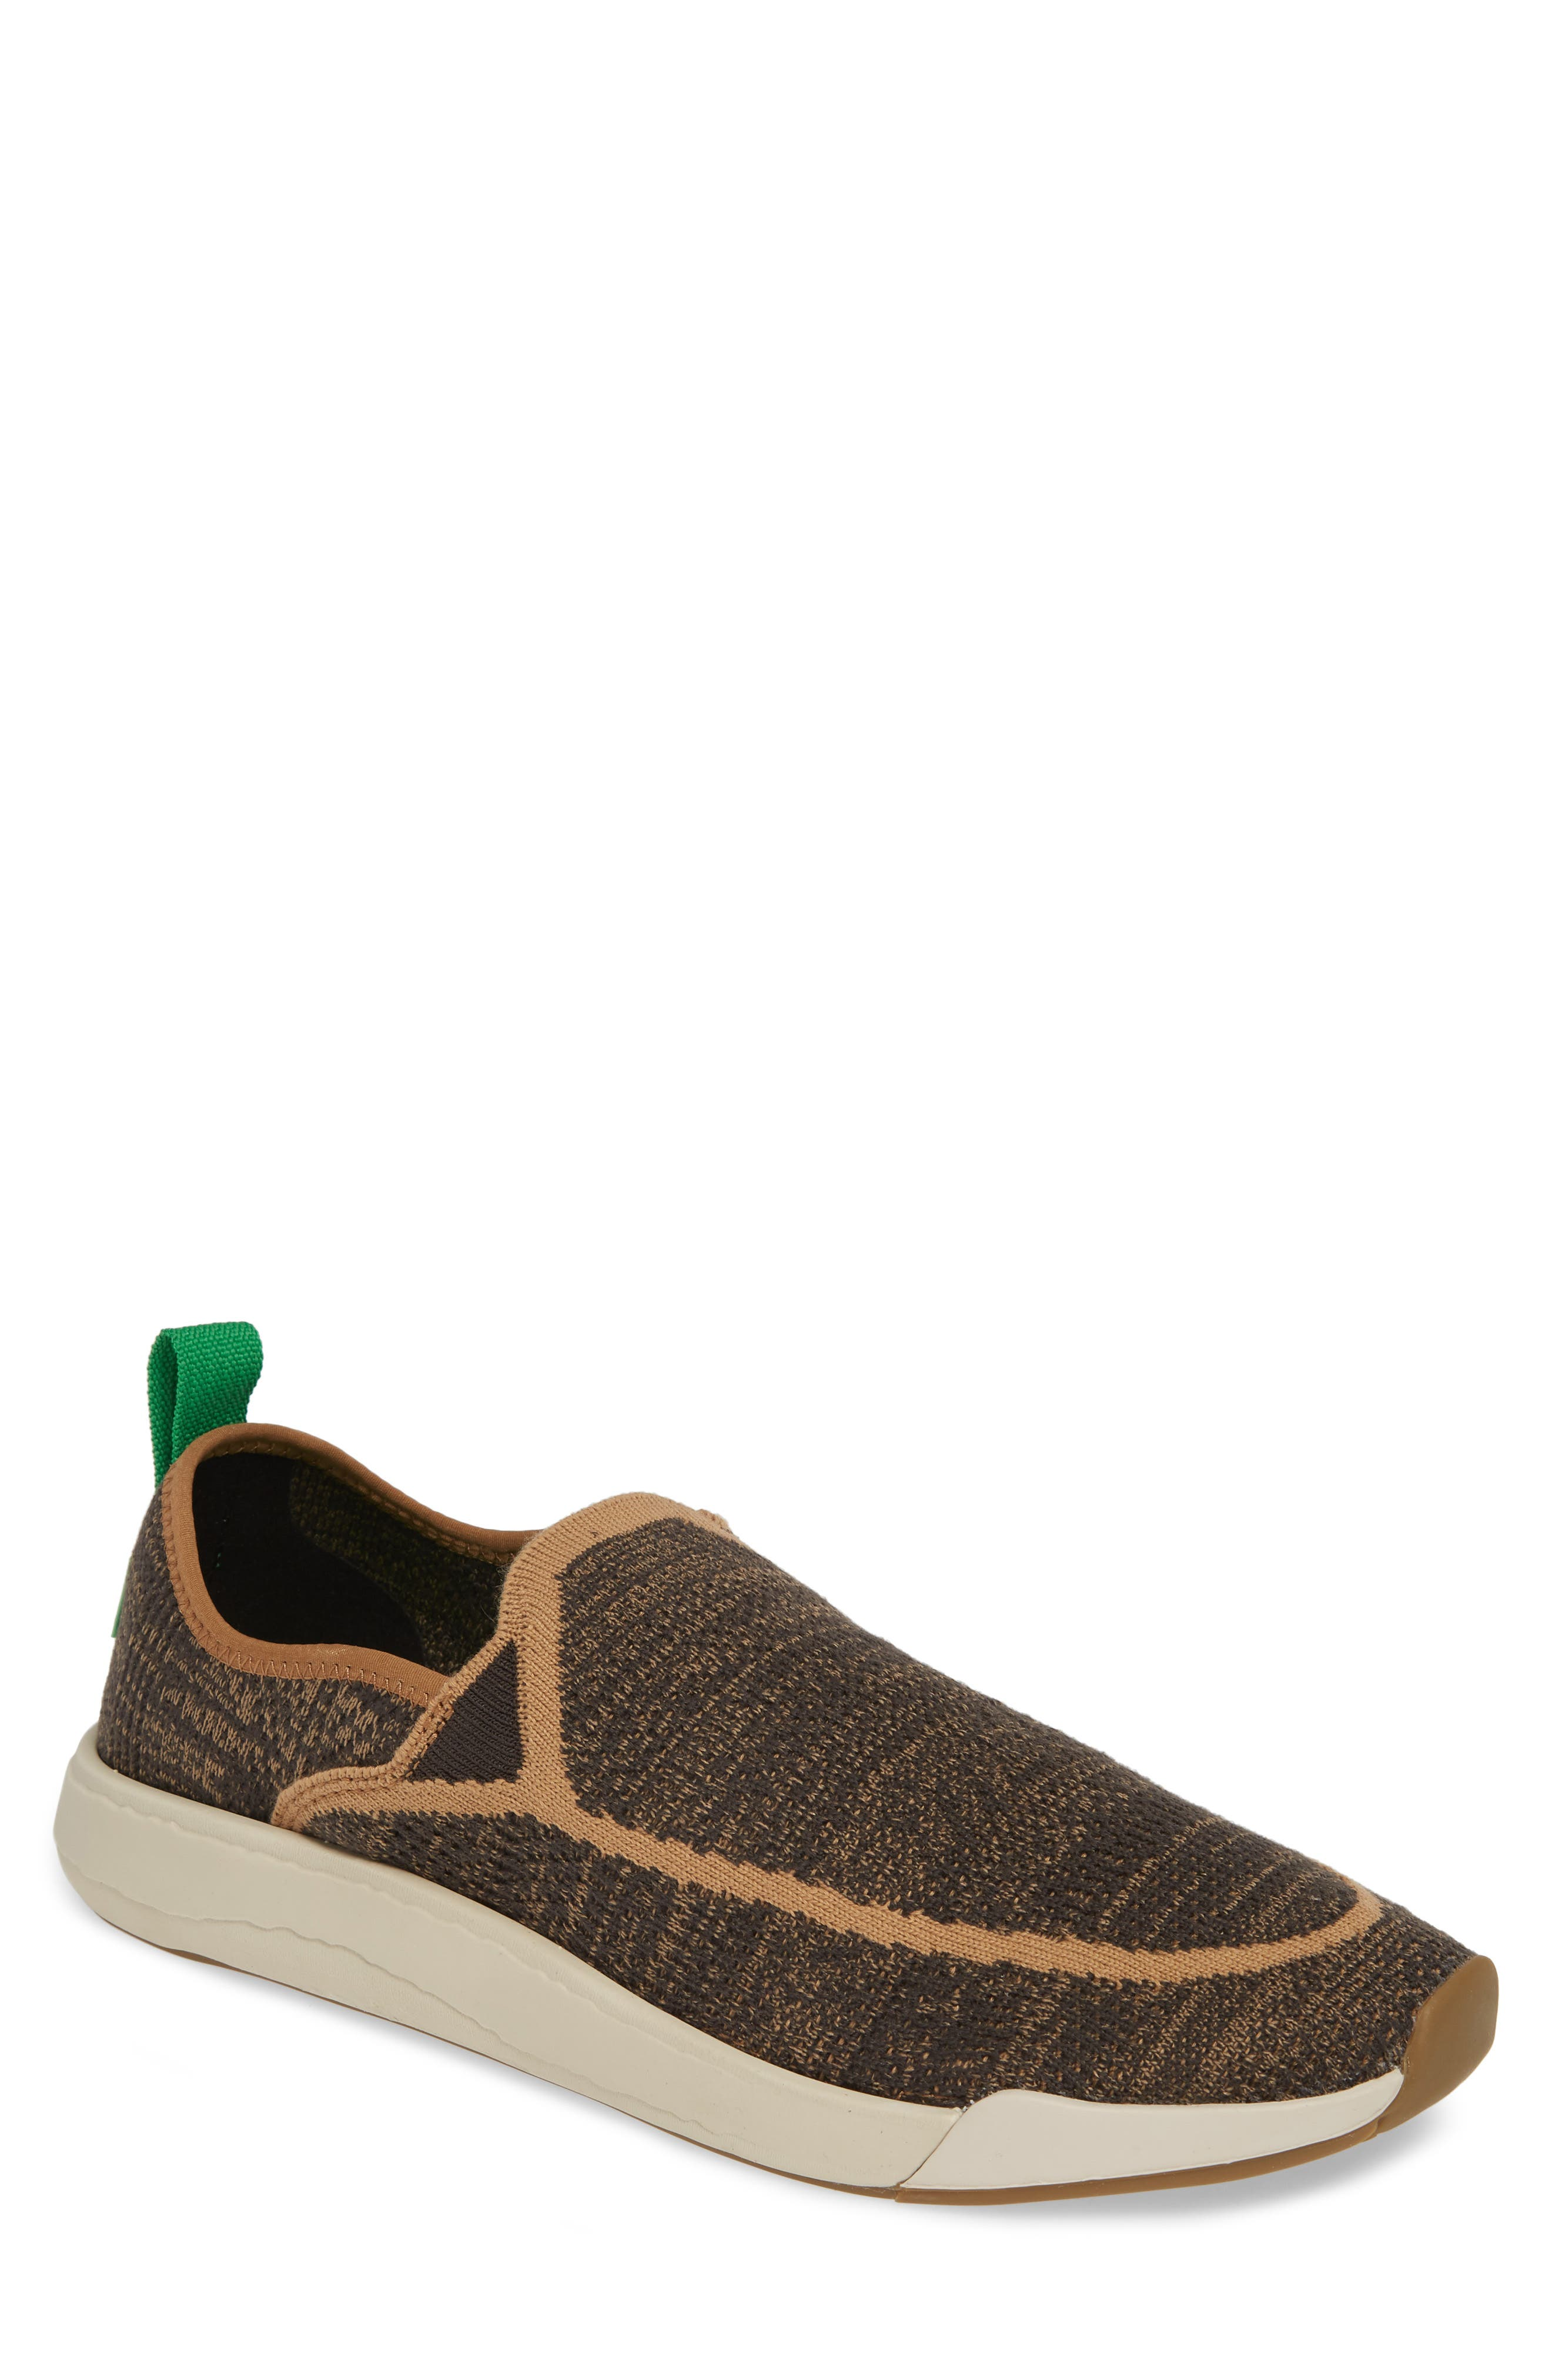 SANUK Chiba Quest Knit Slip-On Sneaker, Main, color, BROWN NATURAL